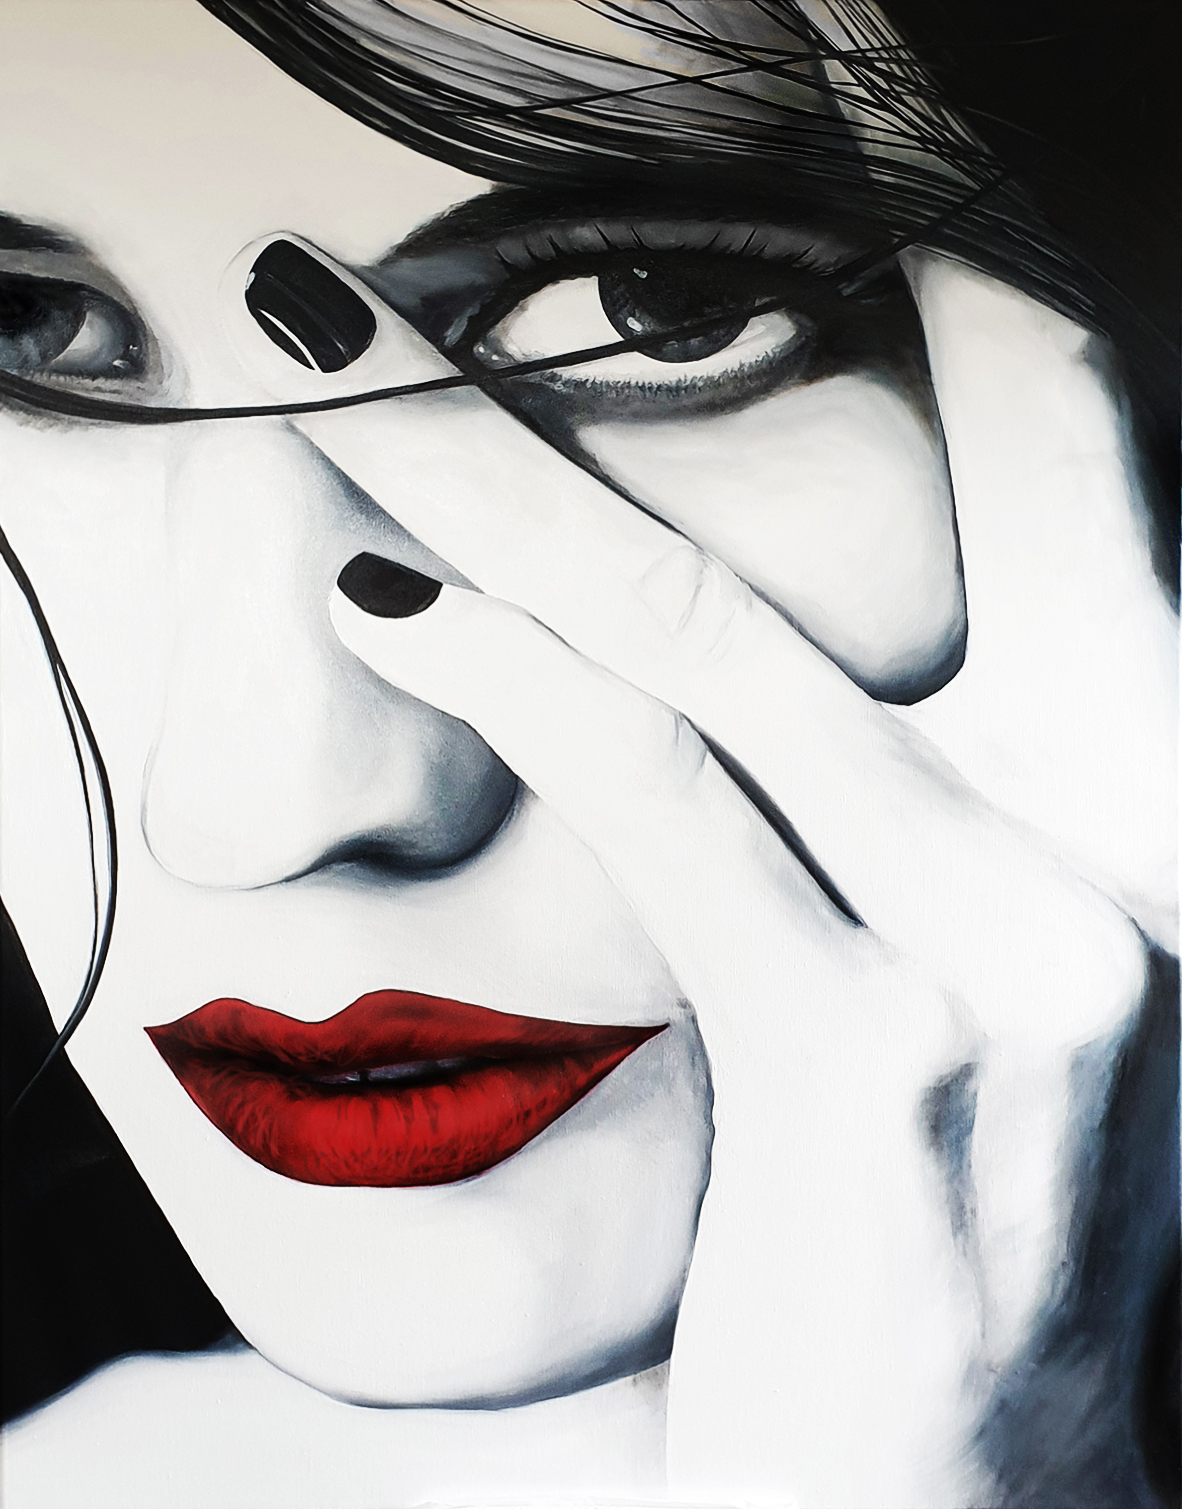 Red Lips 4, olieverf, 70 x 90, 2019